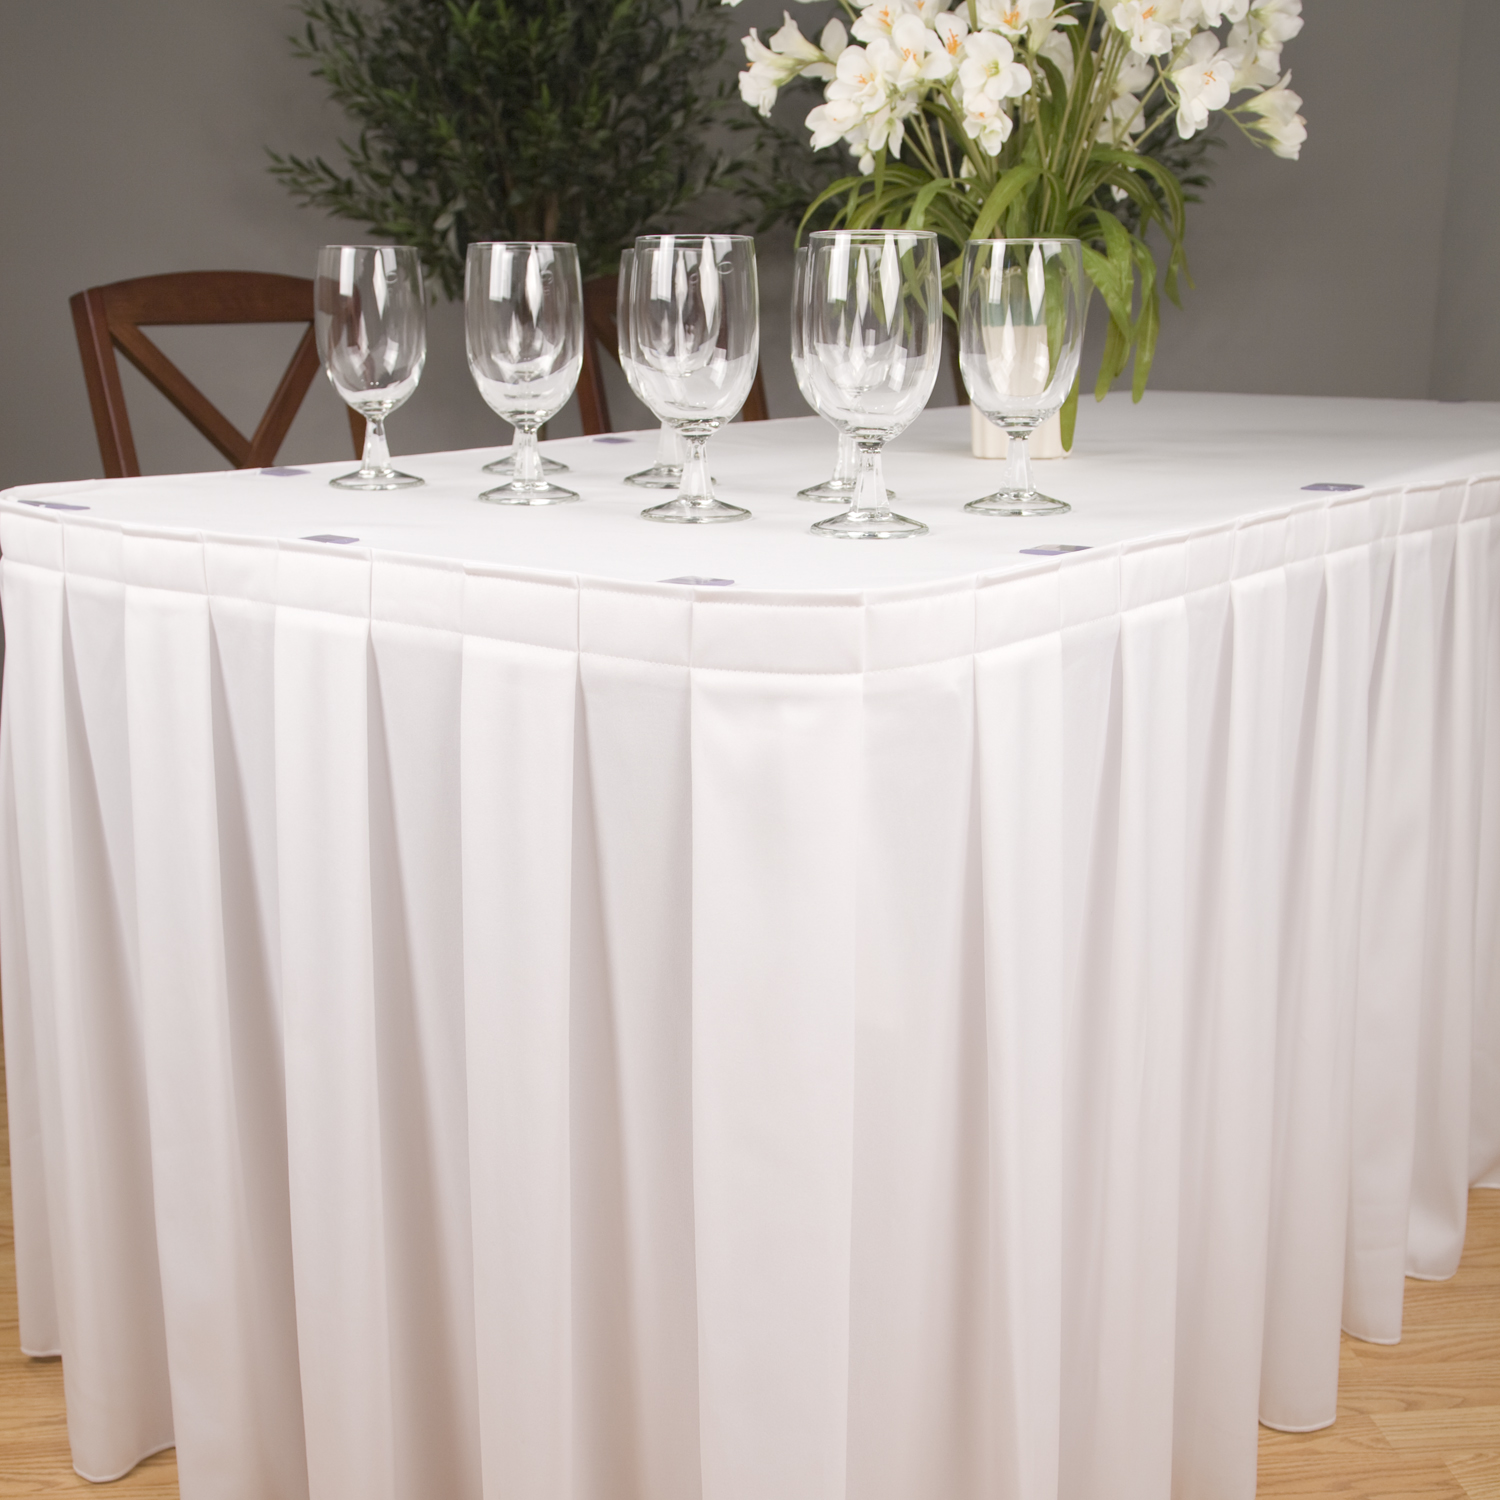 Table Frills Hotel Textile Products Suppliers Linen